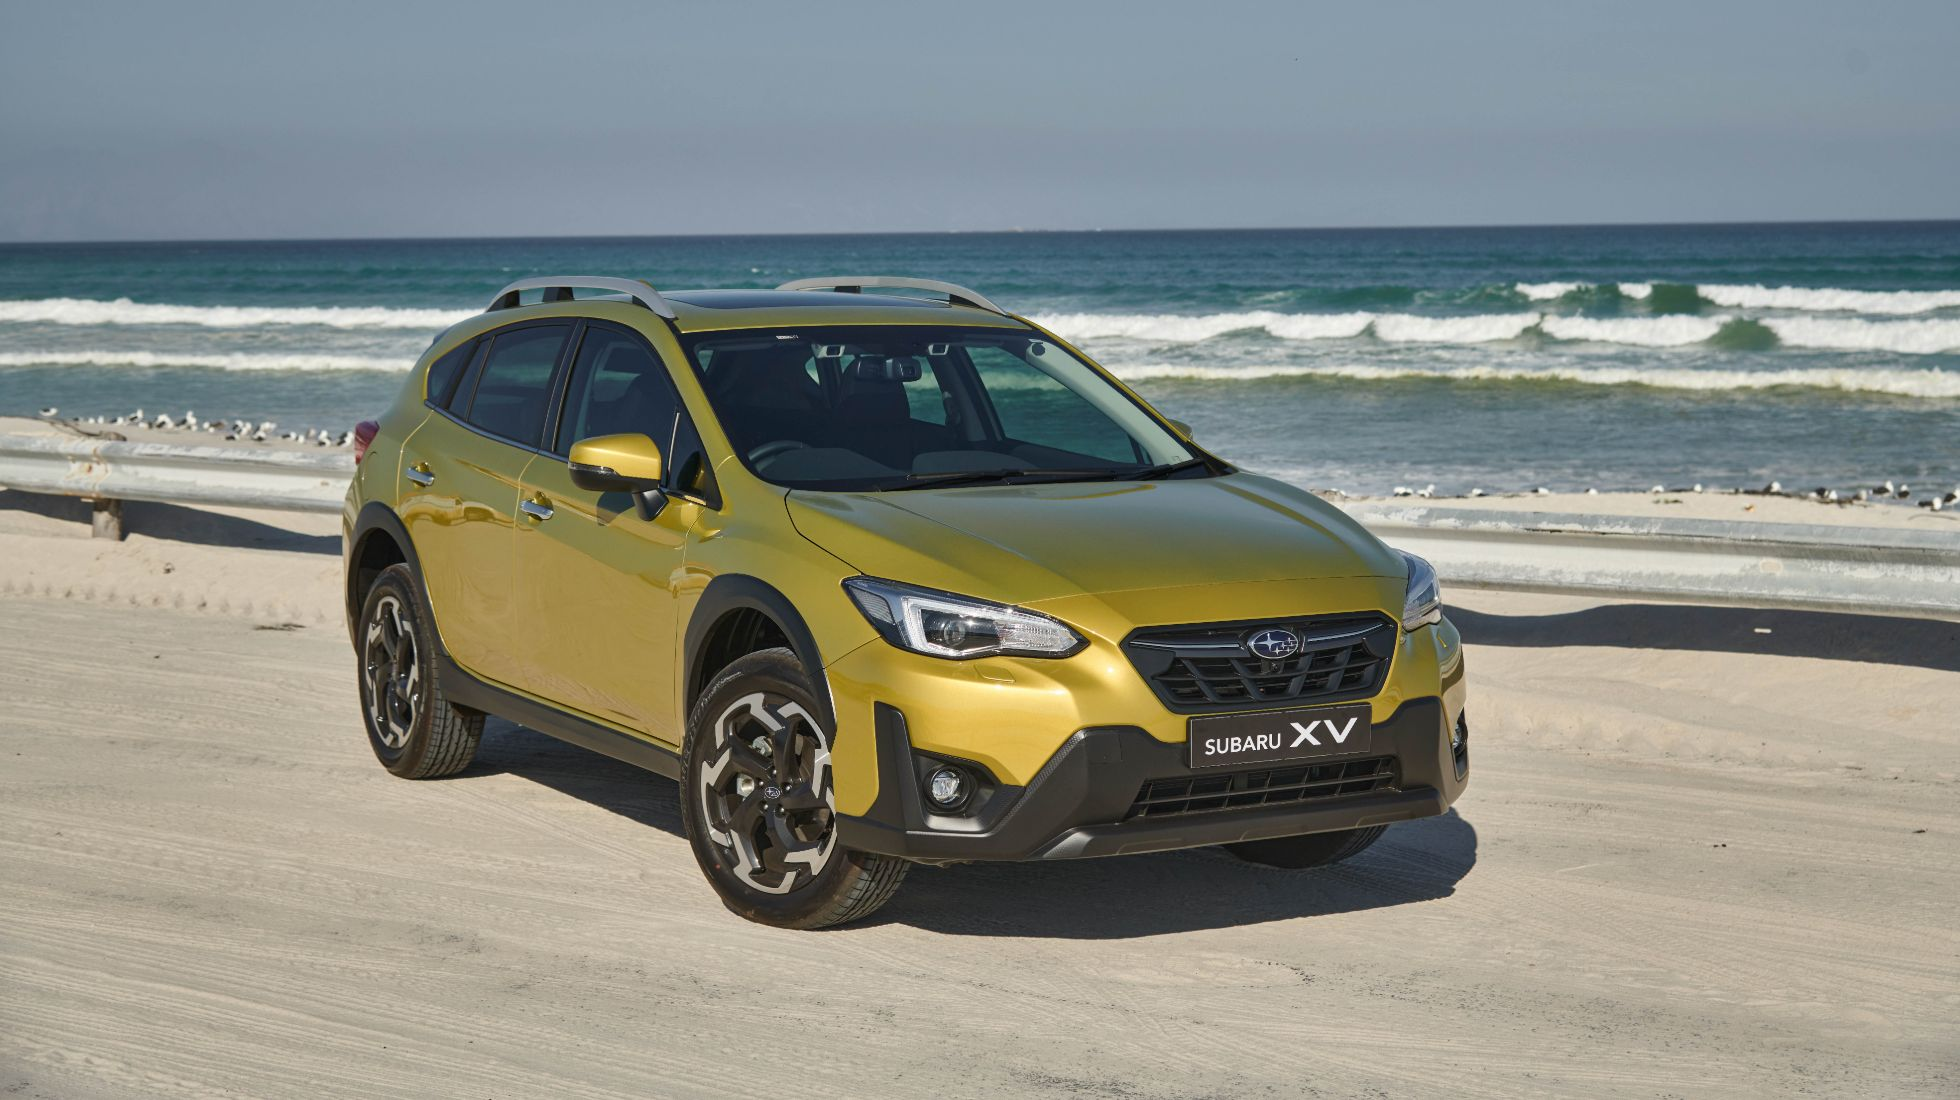 Subaru's XV receives a nip and tuck for 2021